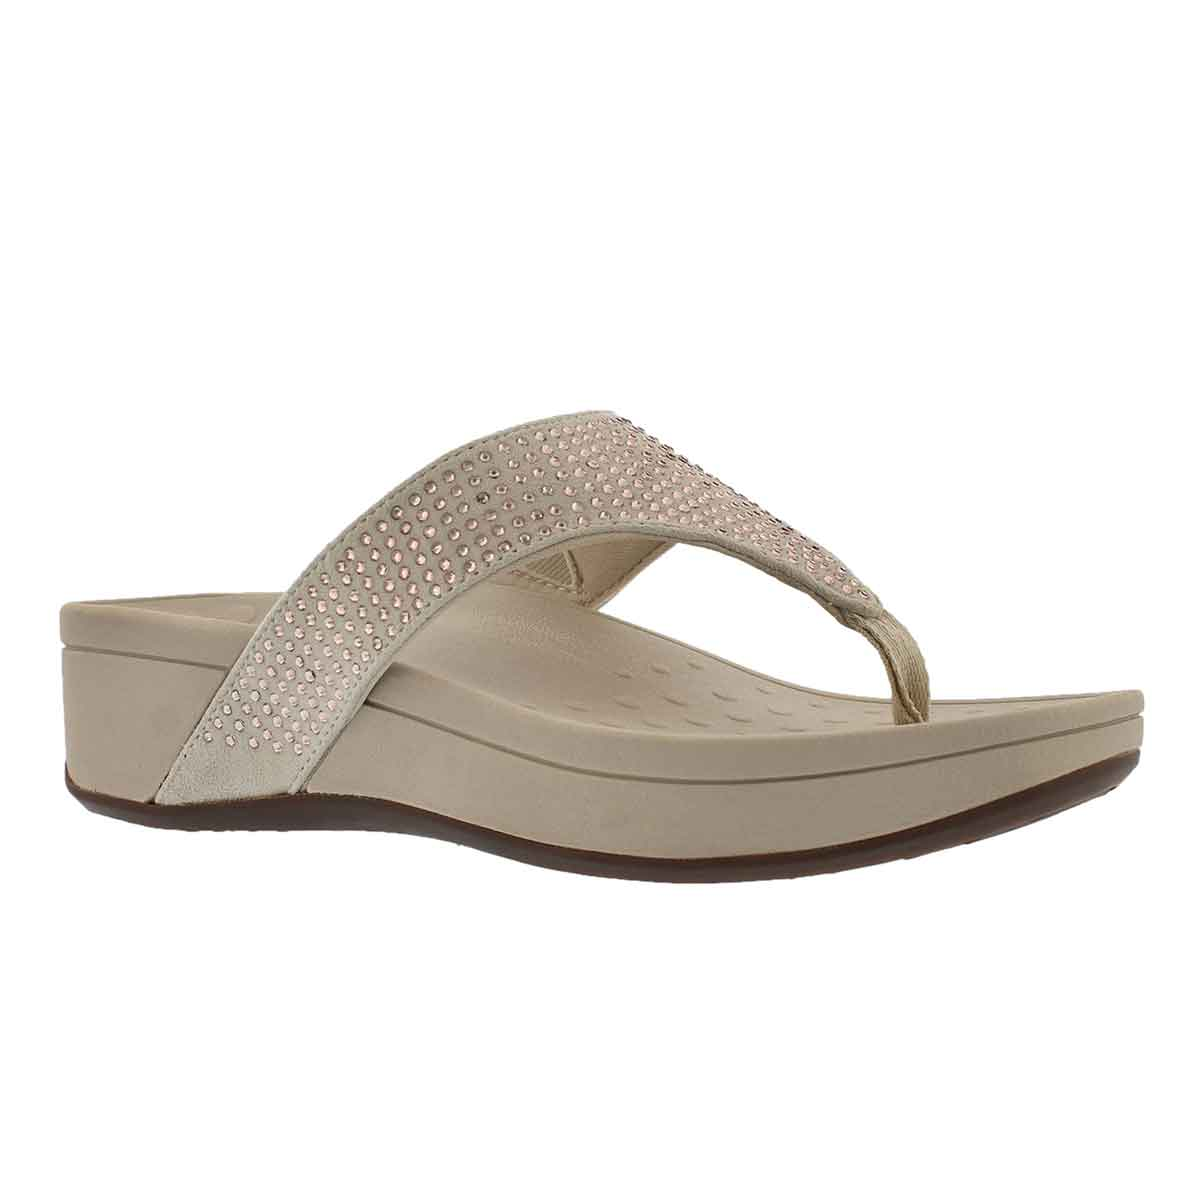 Women's NAPLES chmpange arch support wedge sandals